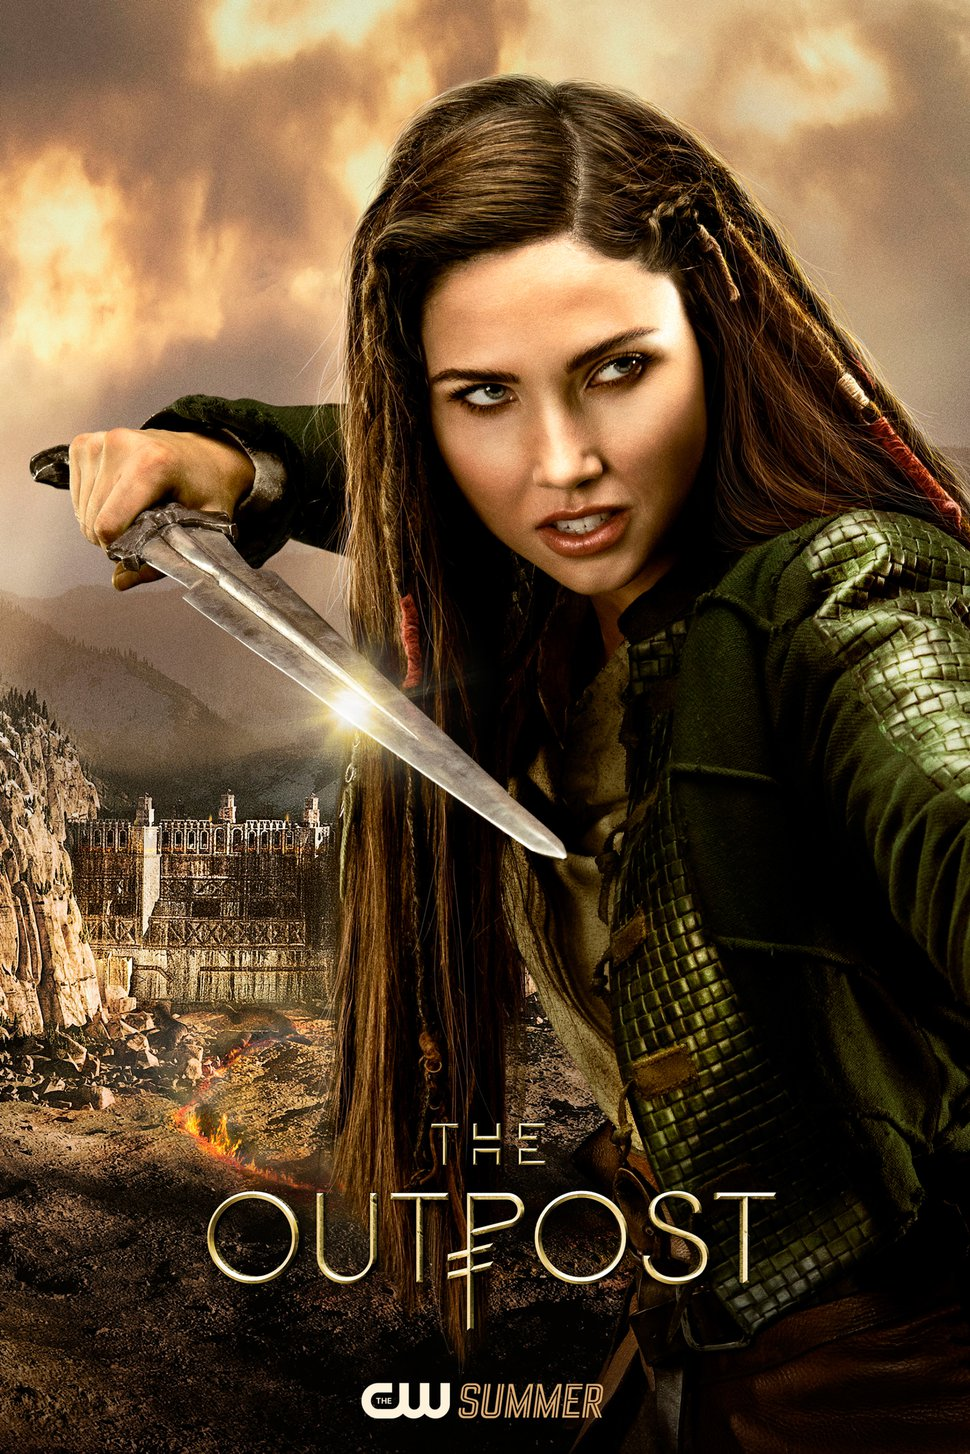 """(Photo courtesy of Electric Entertainment/The CW) Jessica Green stars as Talon in """"The Outpost,"""" which premieres Tuesday, July 10, at 7 p.m. on The CW/Ch. 30."""